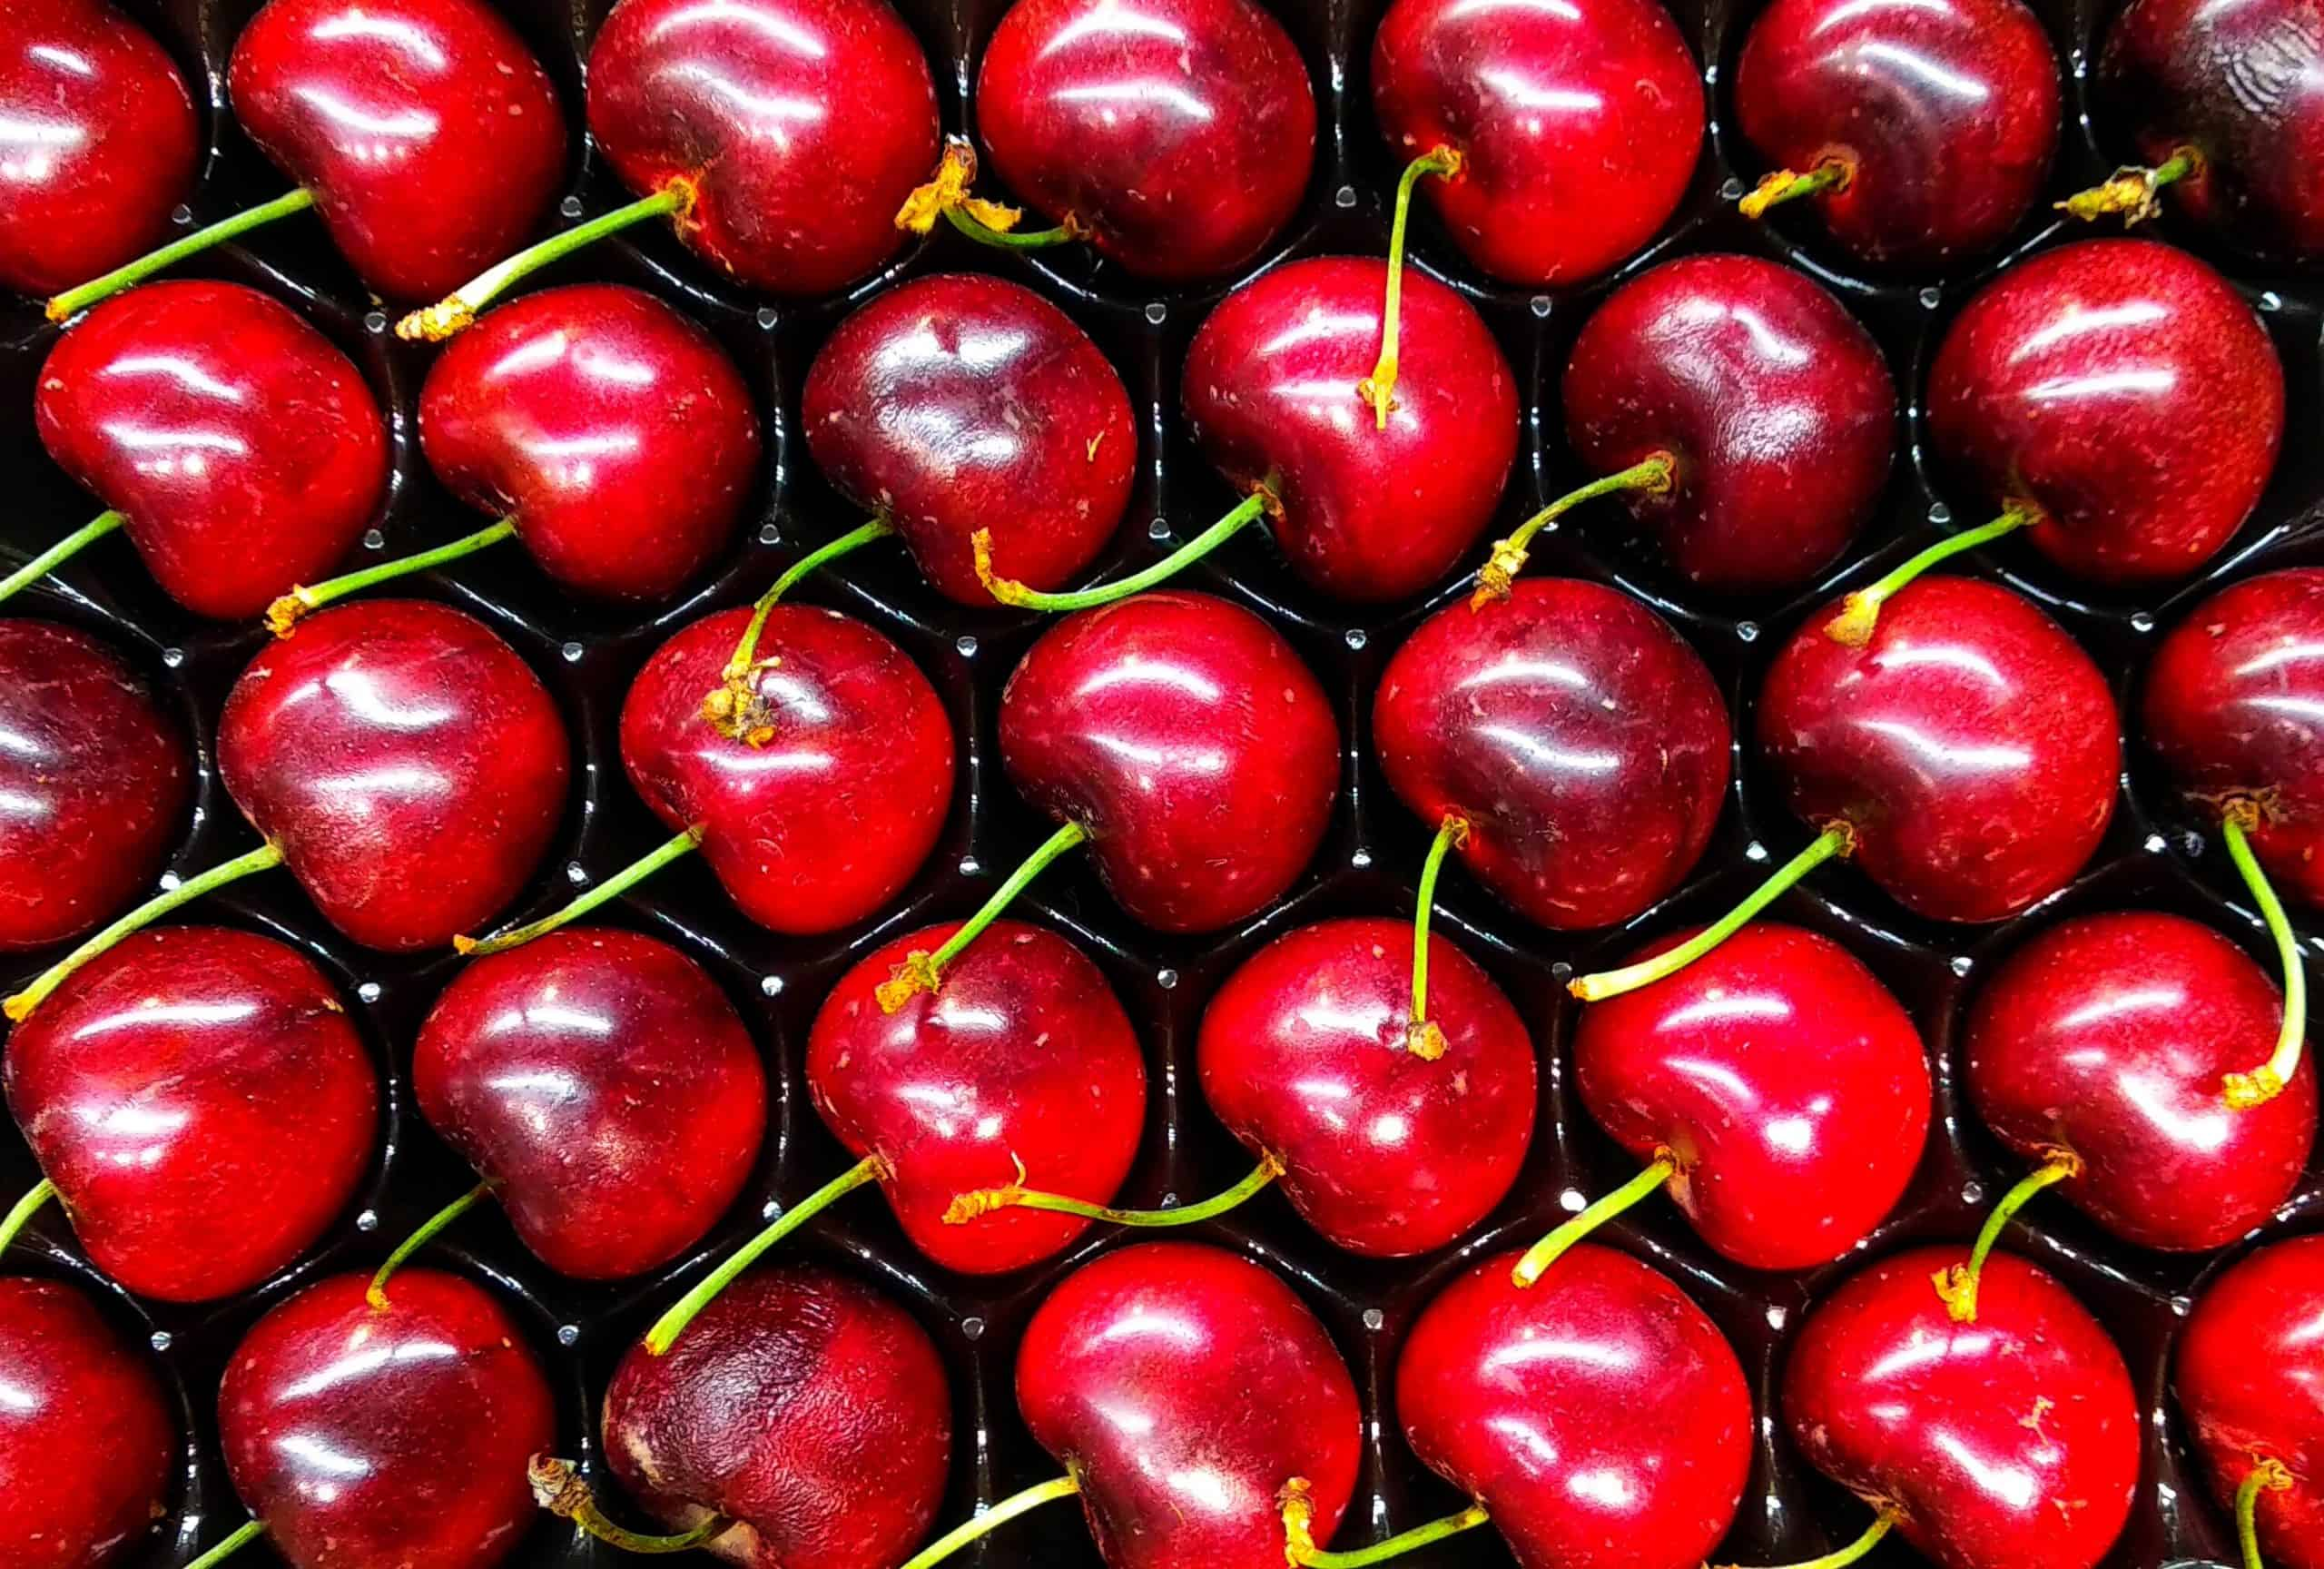 MSC introduces express service for fresh fruit between Chile and Asia